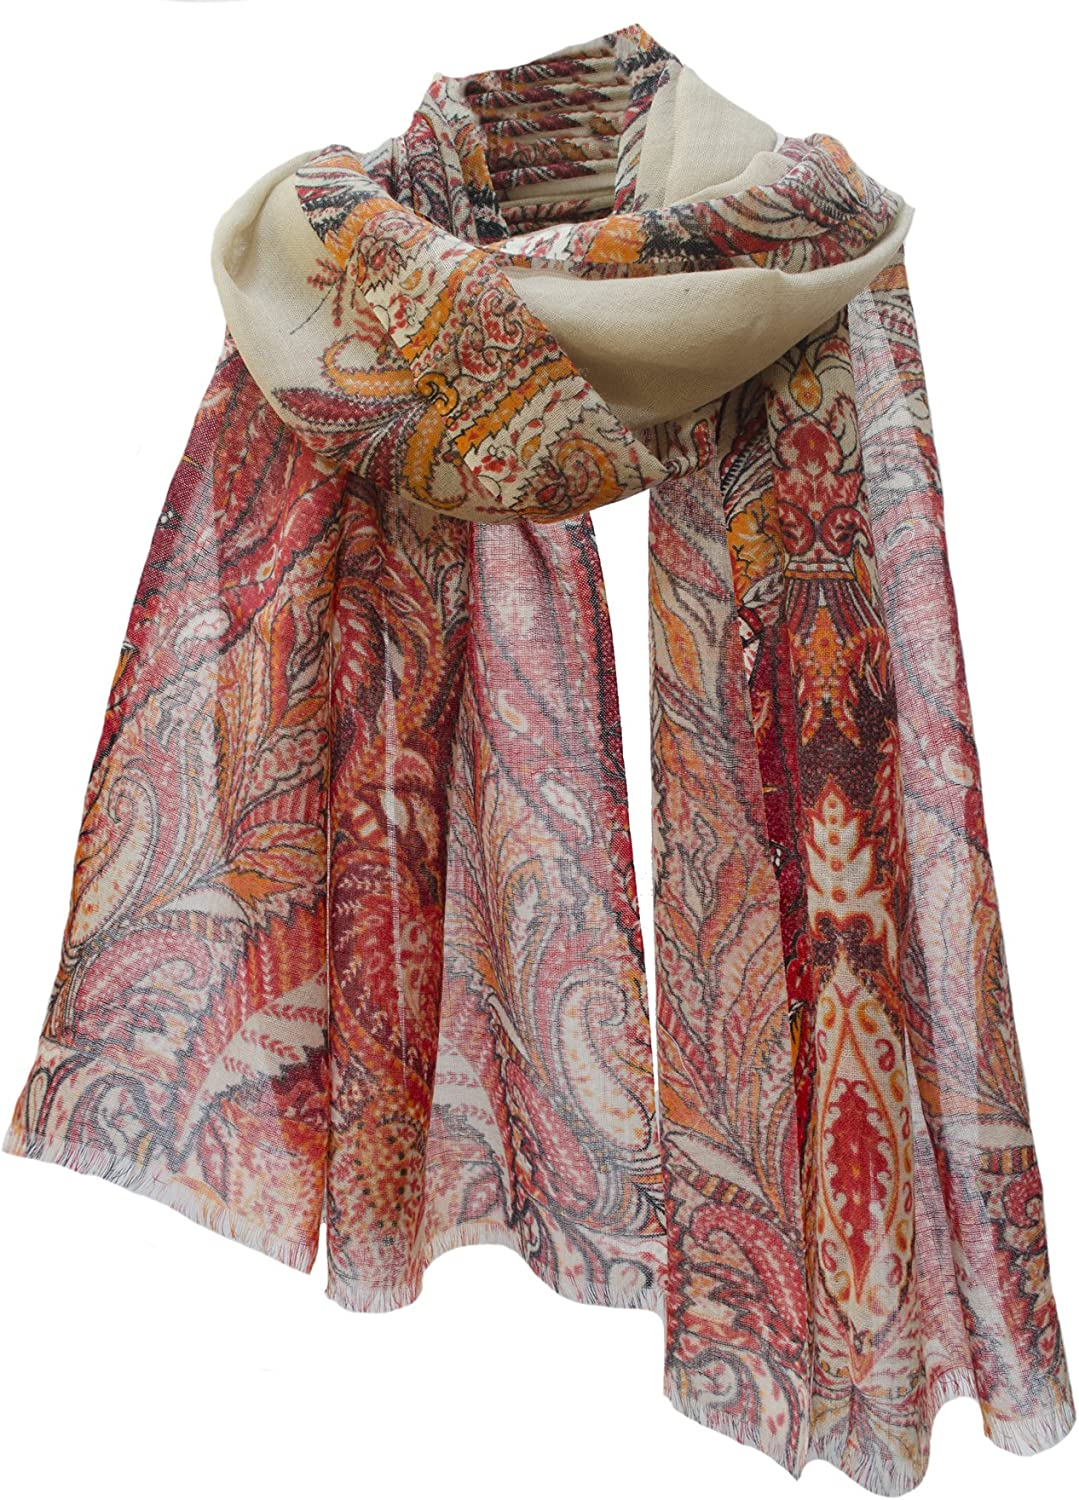 Paisley Leaf Border Lightweight Wool Shawl Scarf Wrap Stole Beige Burnt orange Red